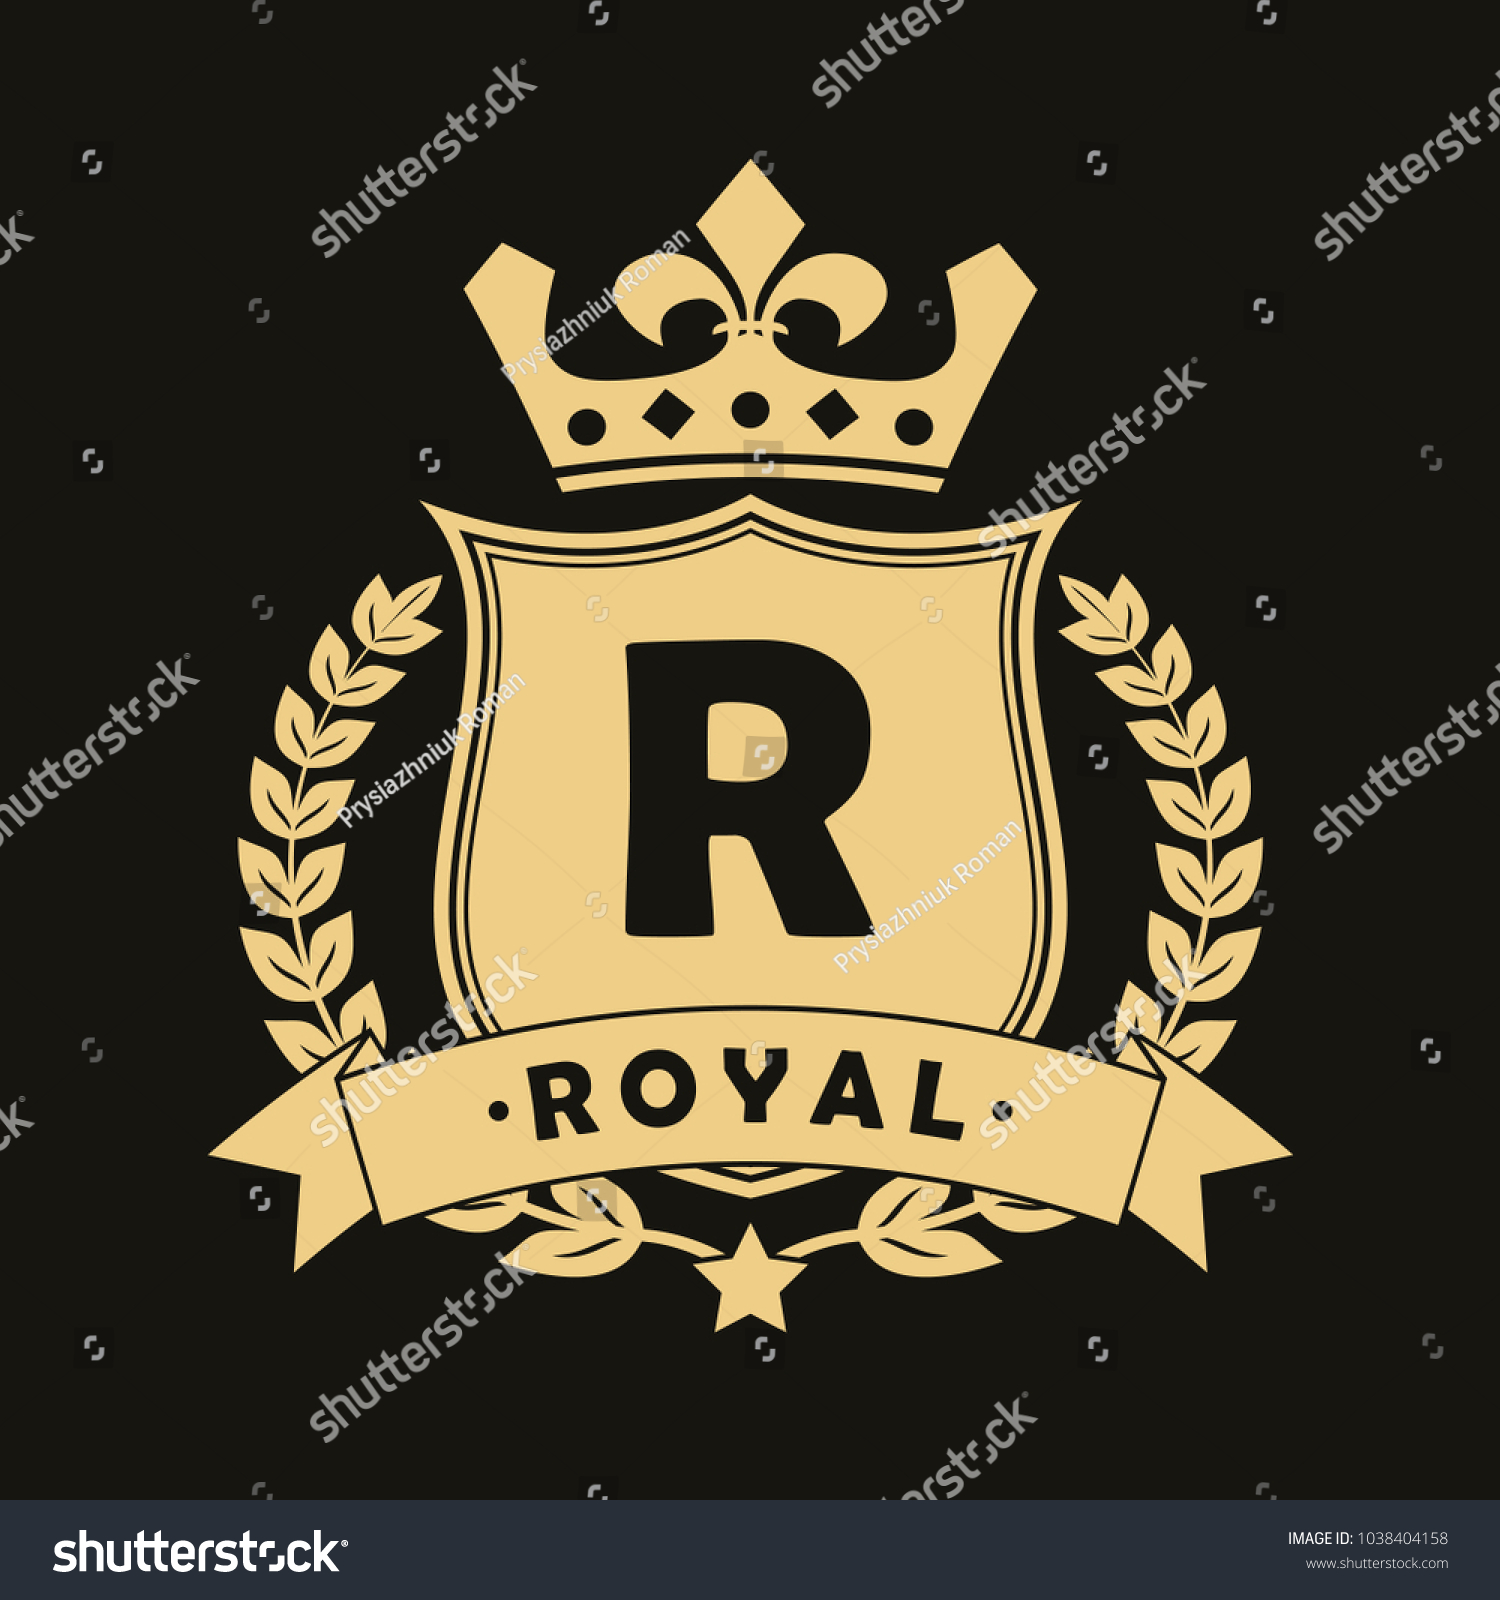 Royal Design Logo With Shield Crown Laurel Wreath And Ribbon Luxury Logotype Template